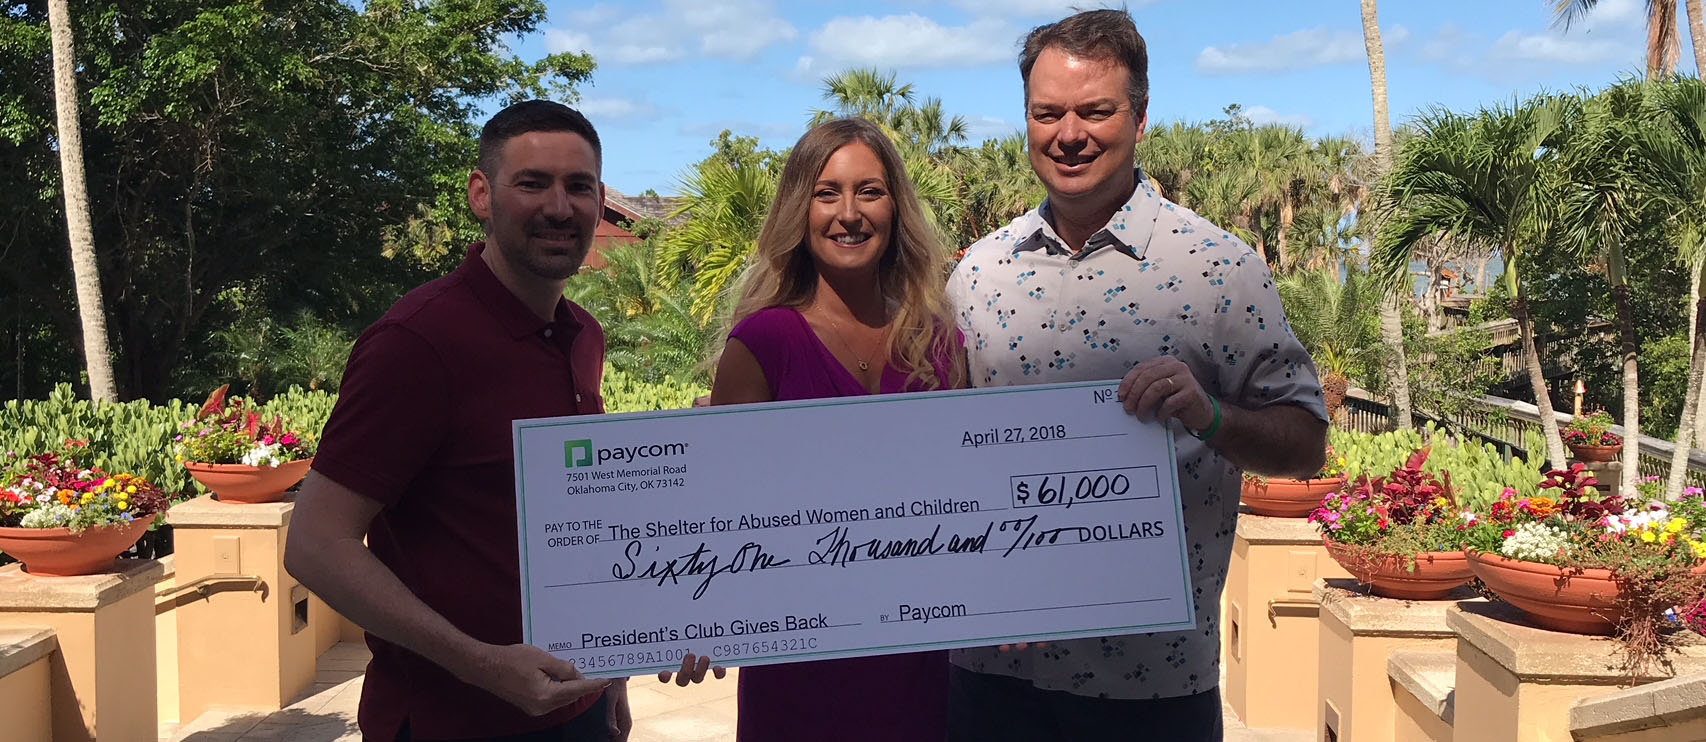 Paycom's Sales Force Raises $61,000 for The Shelter for Abused Women & Children